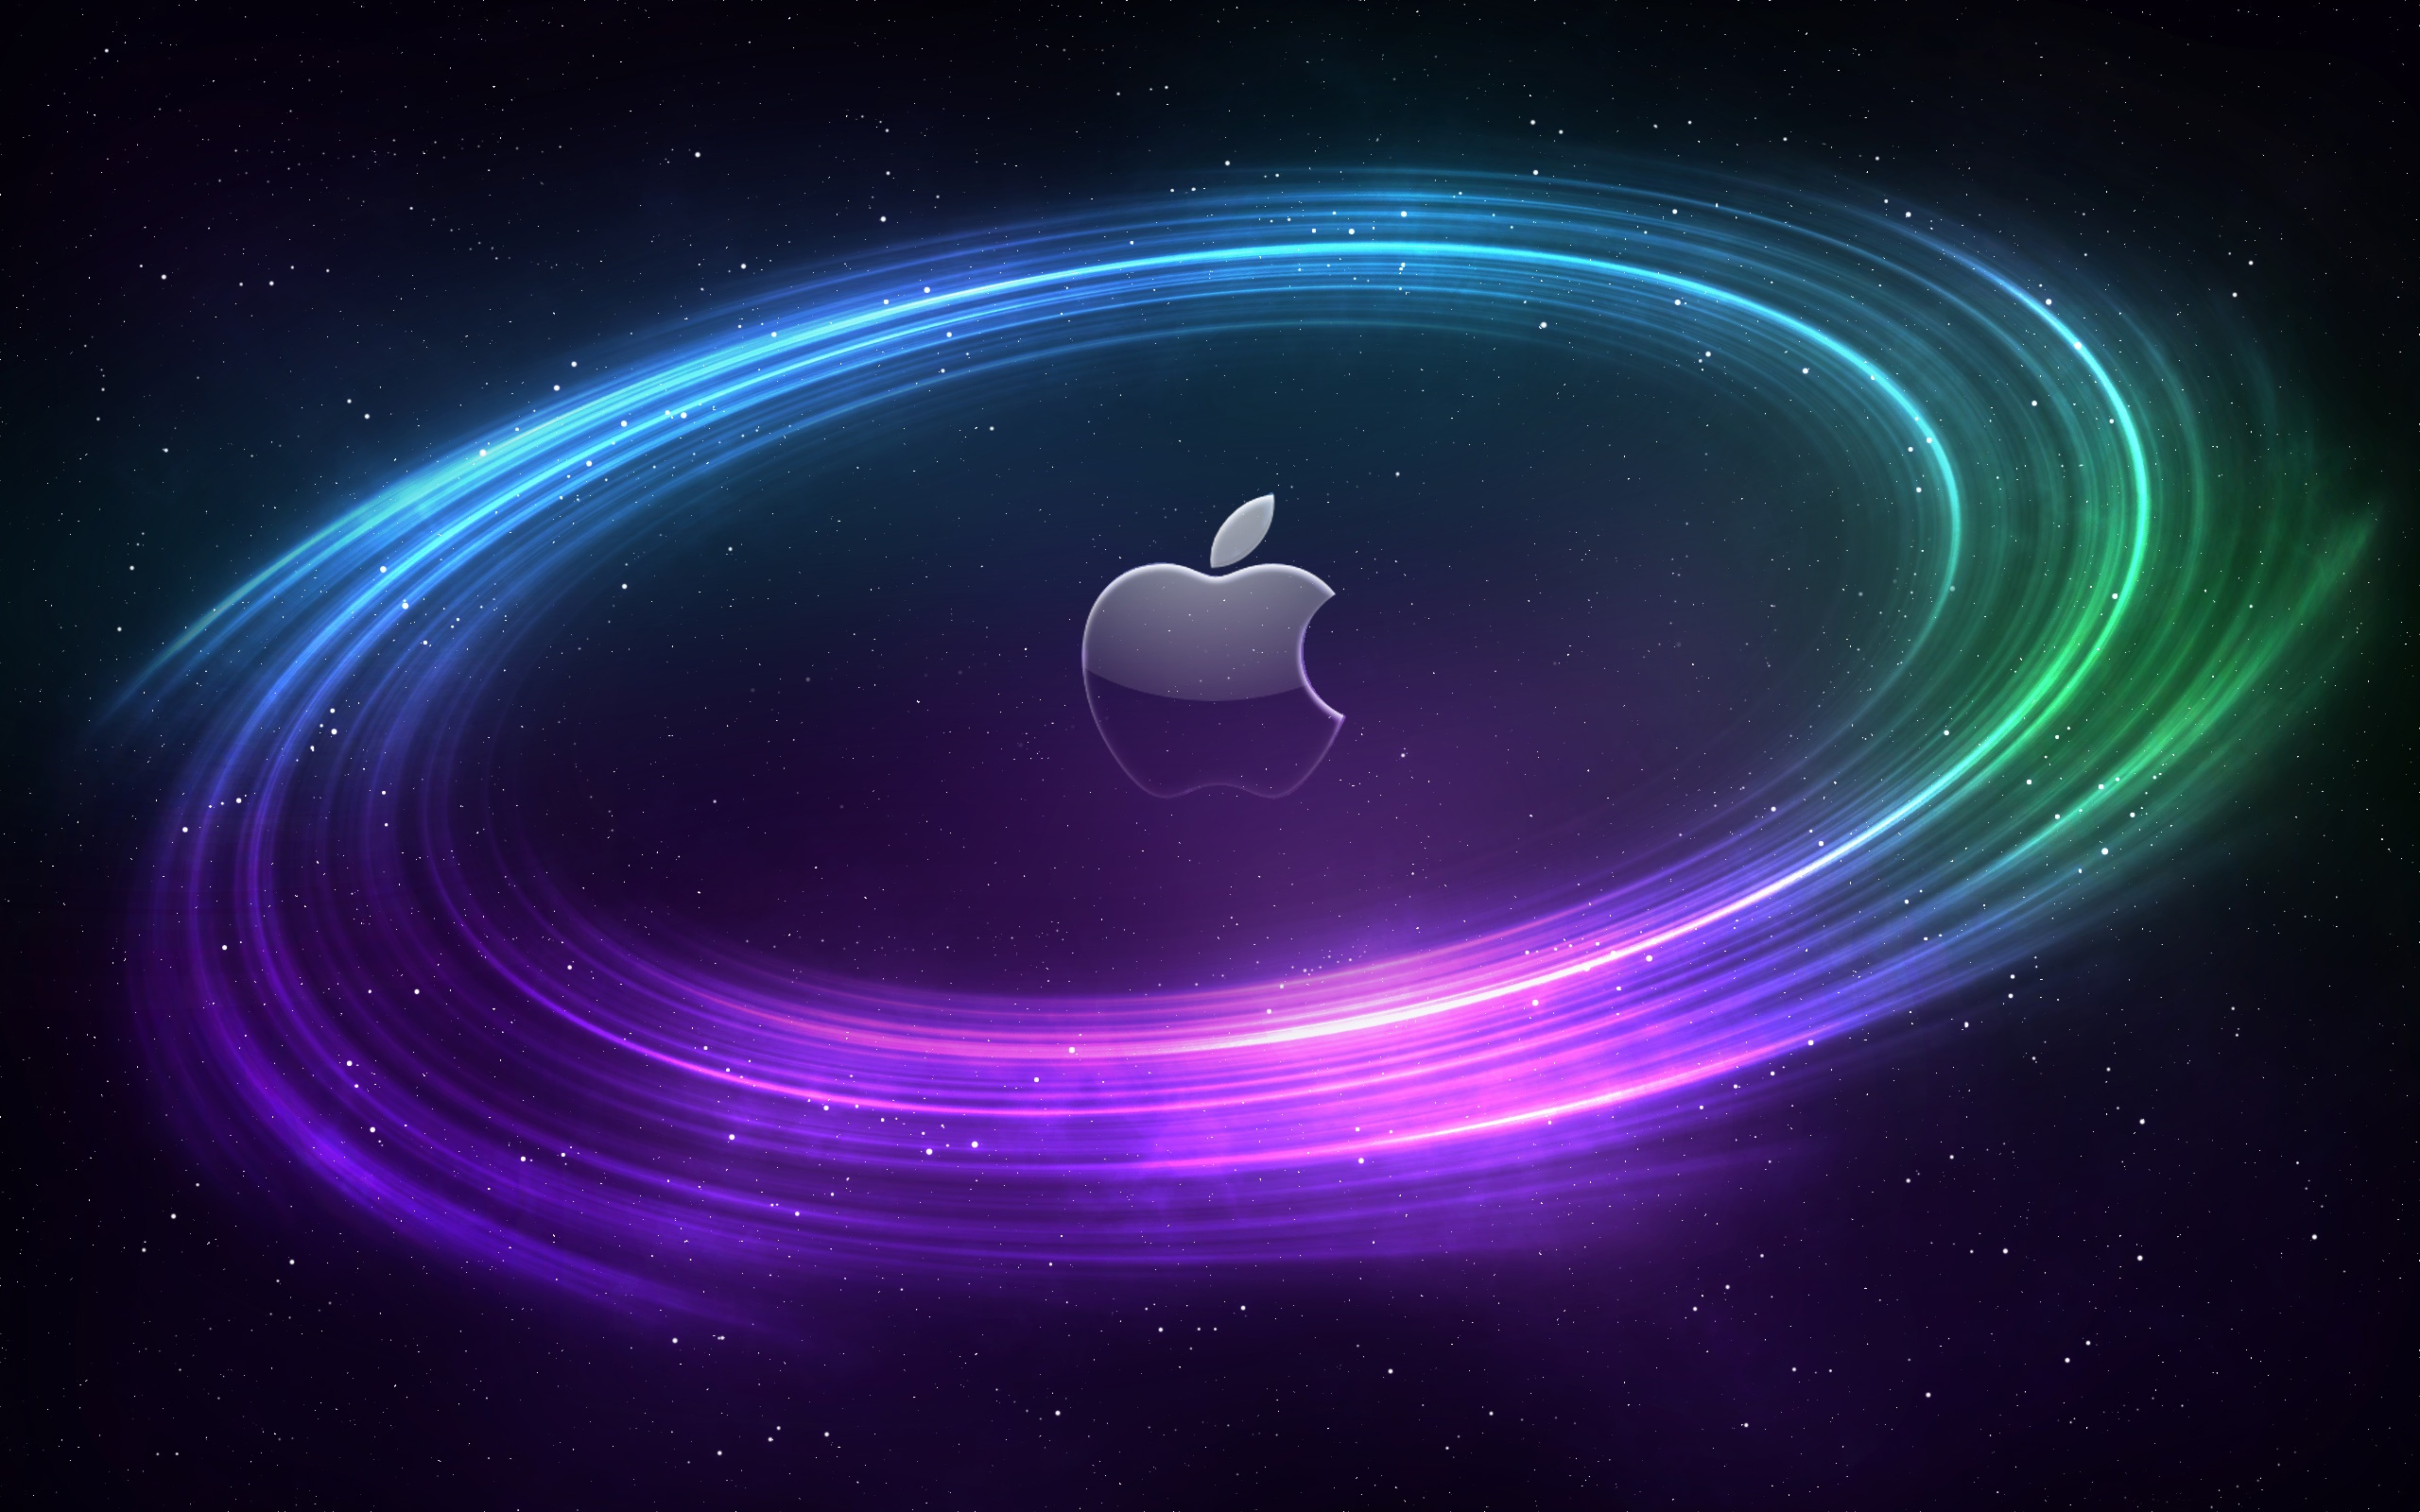 apple space wallpapers hd | pixelstalk